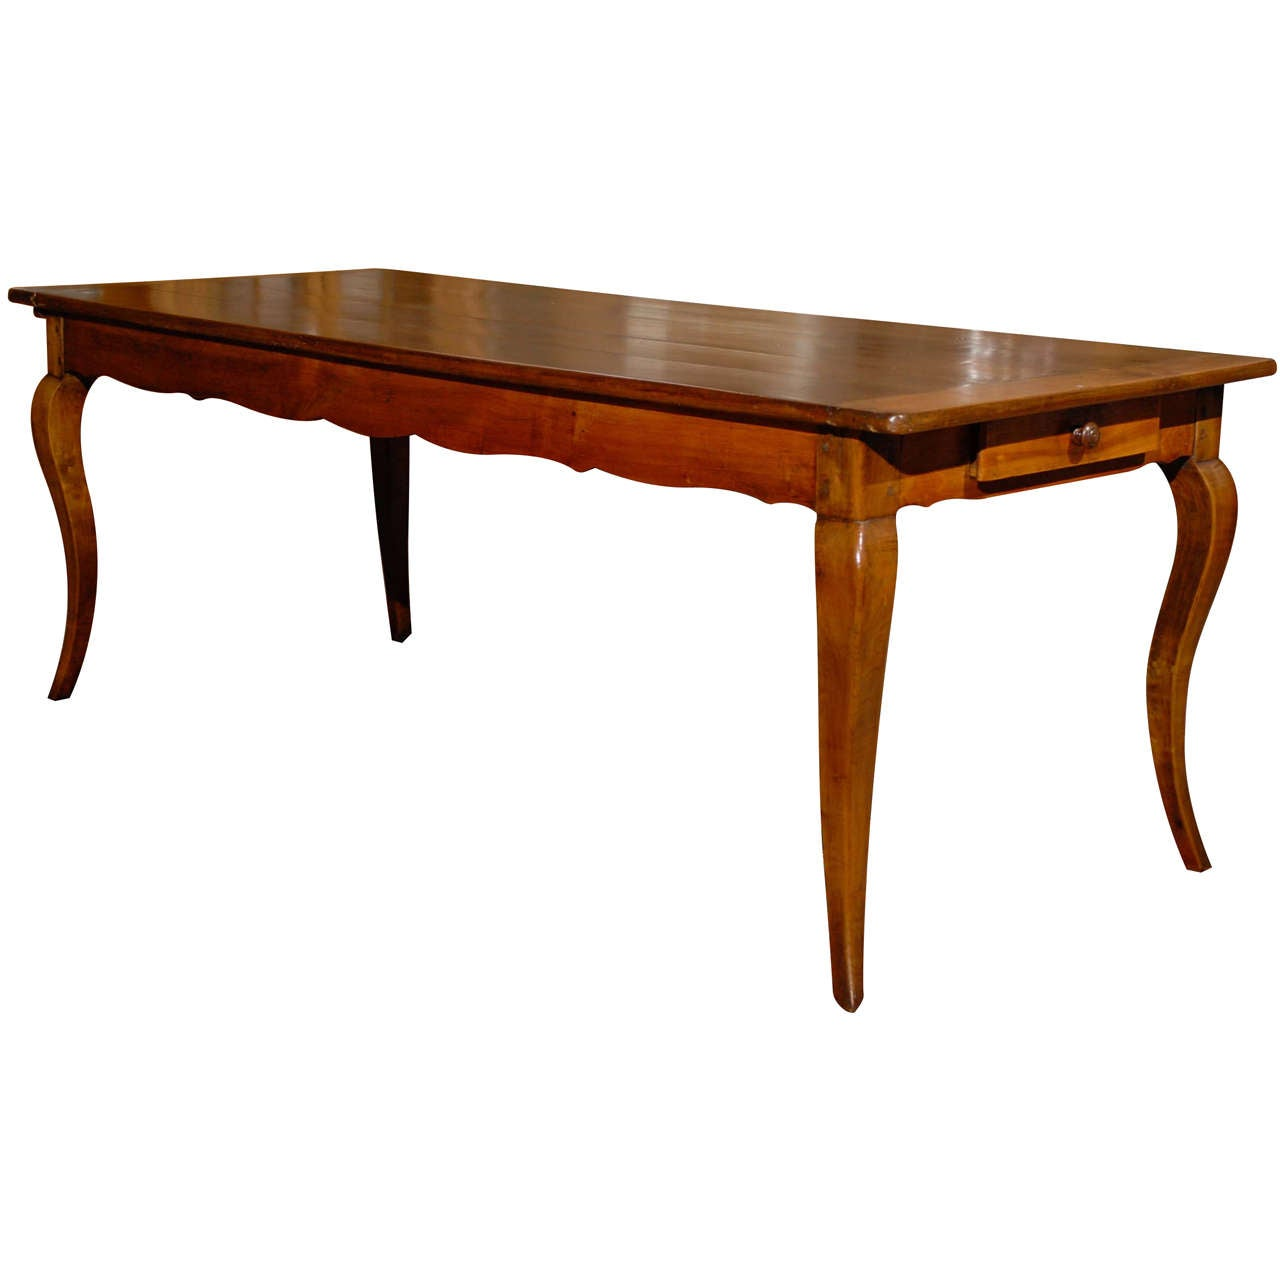 19th century french dining table at 1stdibs